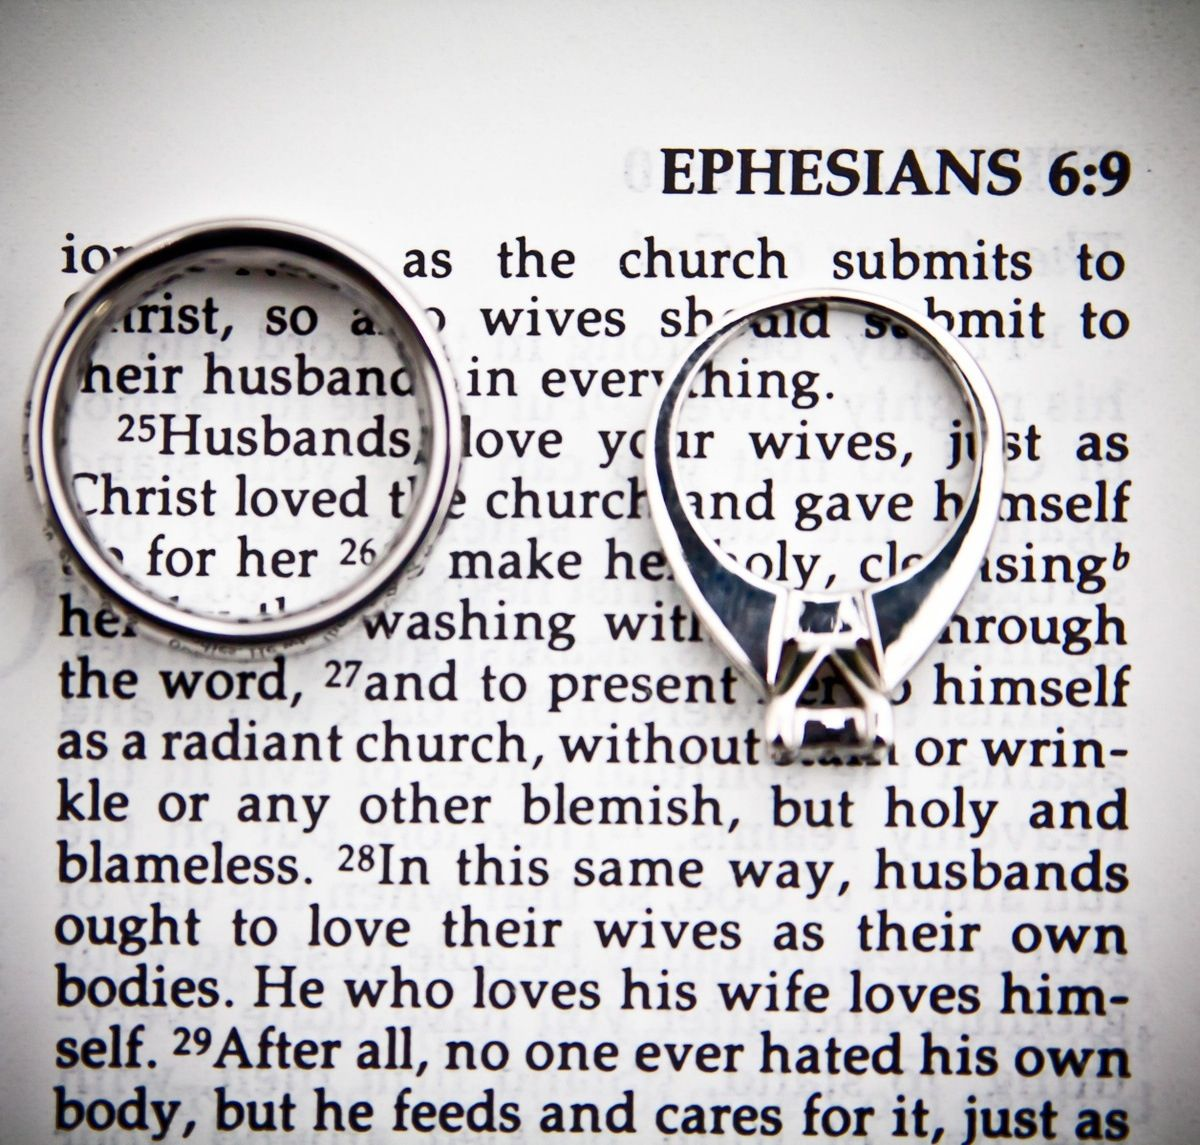 GOD's plan for marriage (not the world's hellbound way